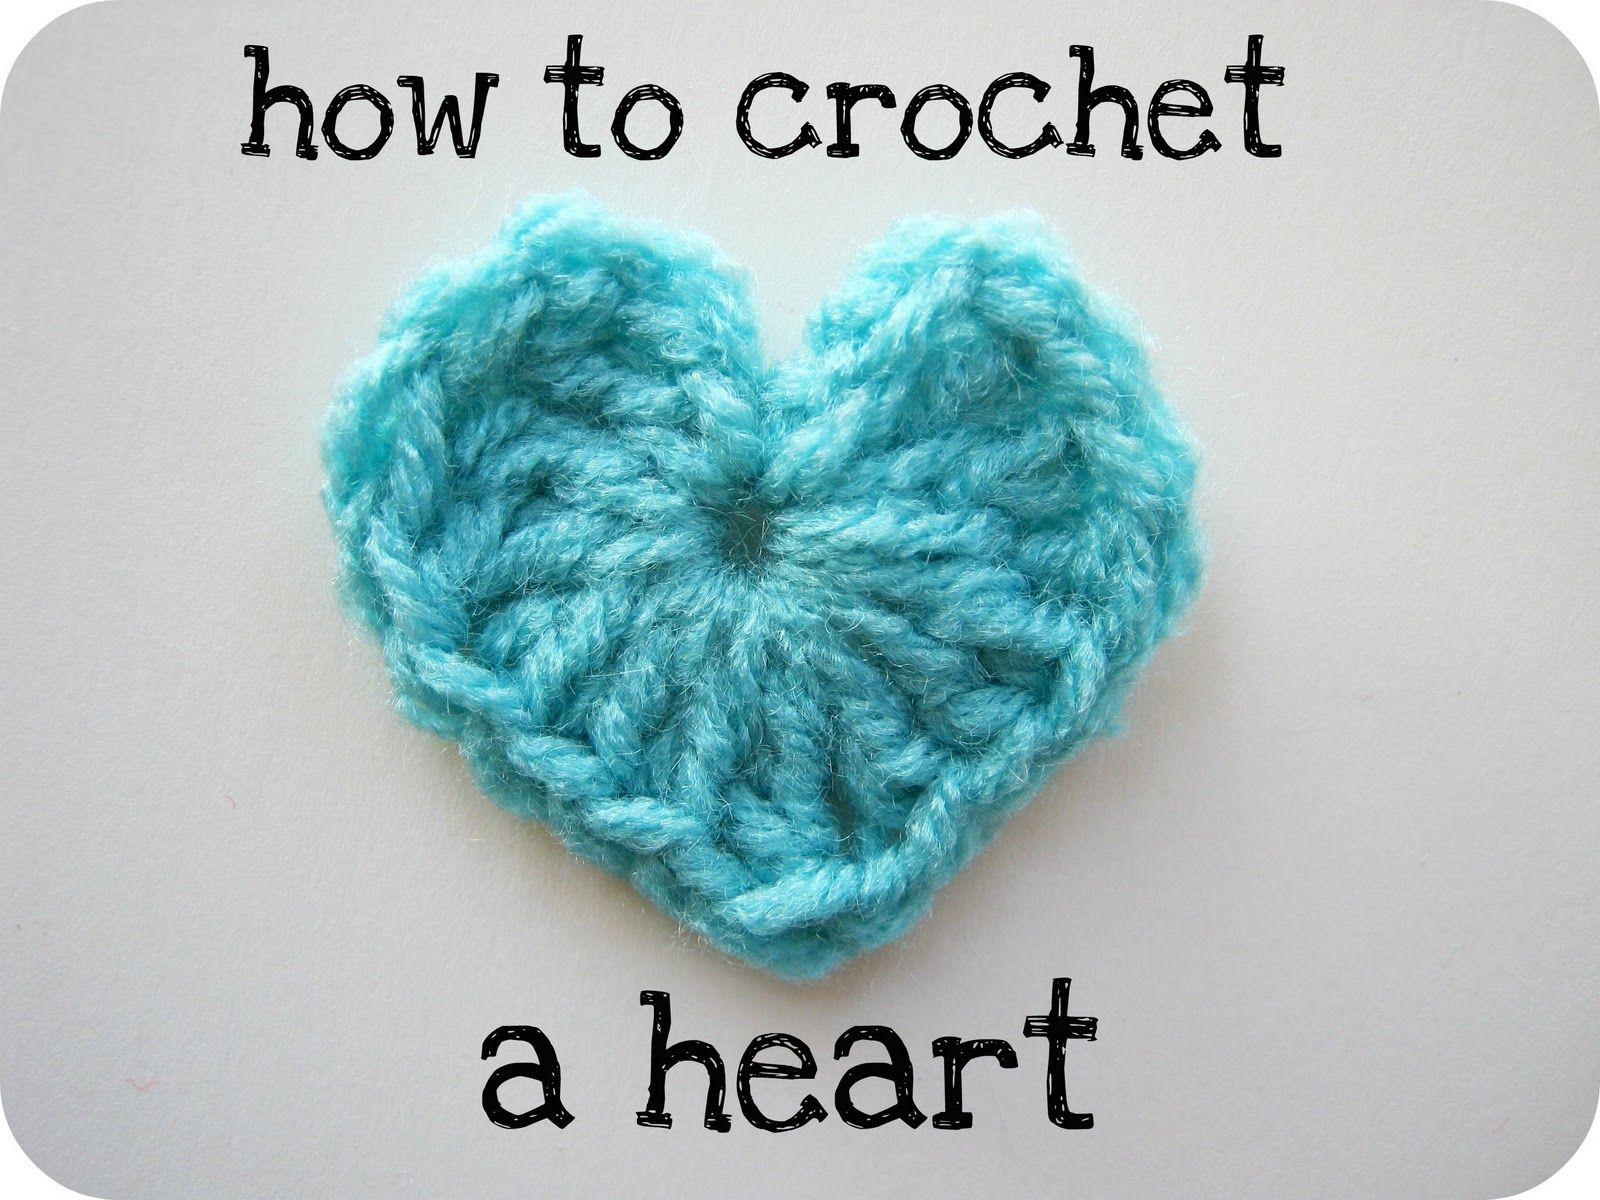 Crochet heart patterns for beginners but beware crocheting these crochet heart patterns for beginners but beware crocheting these little hearts can be quite addicting bankloansurffo Images